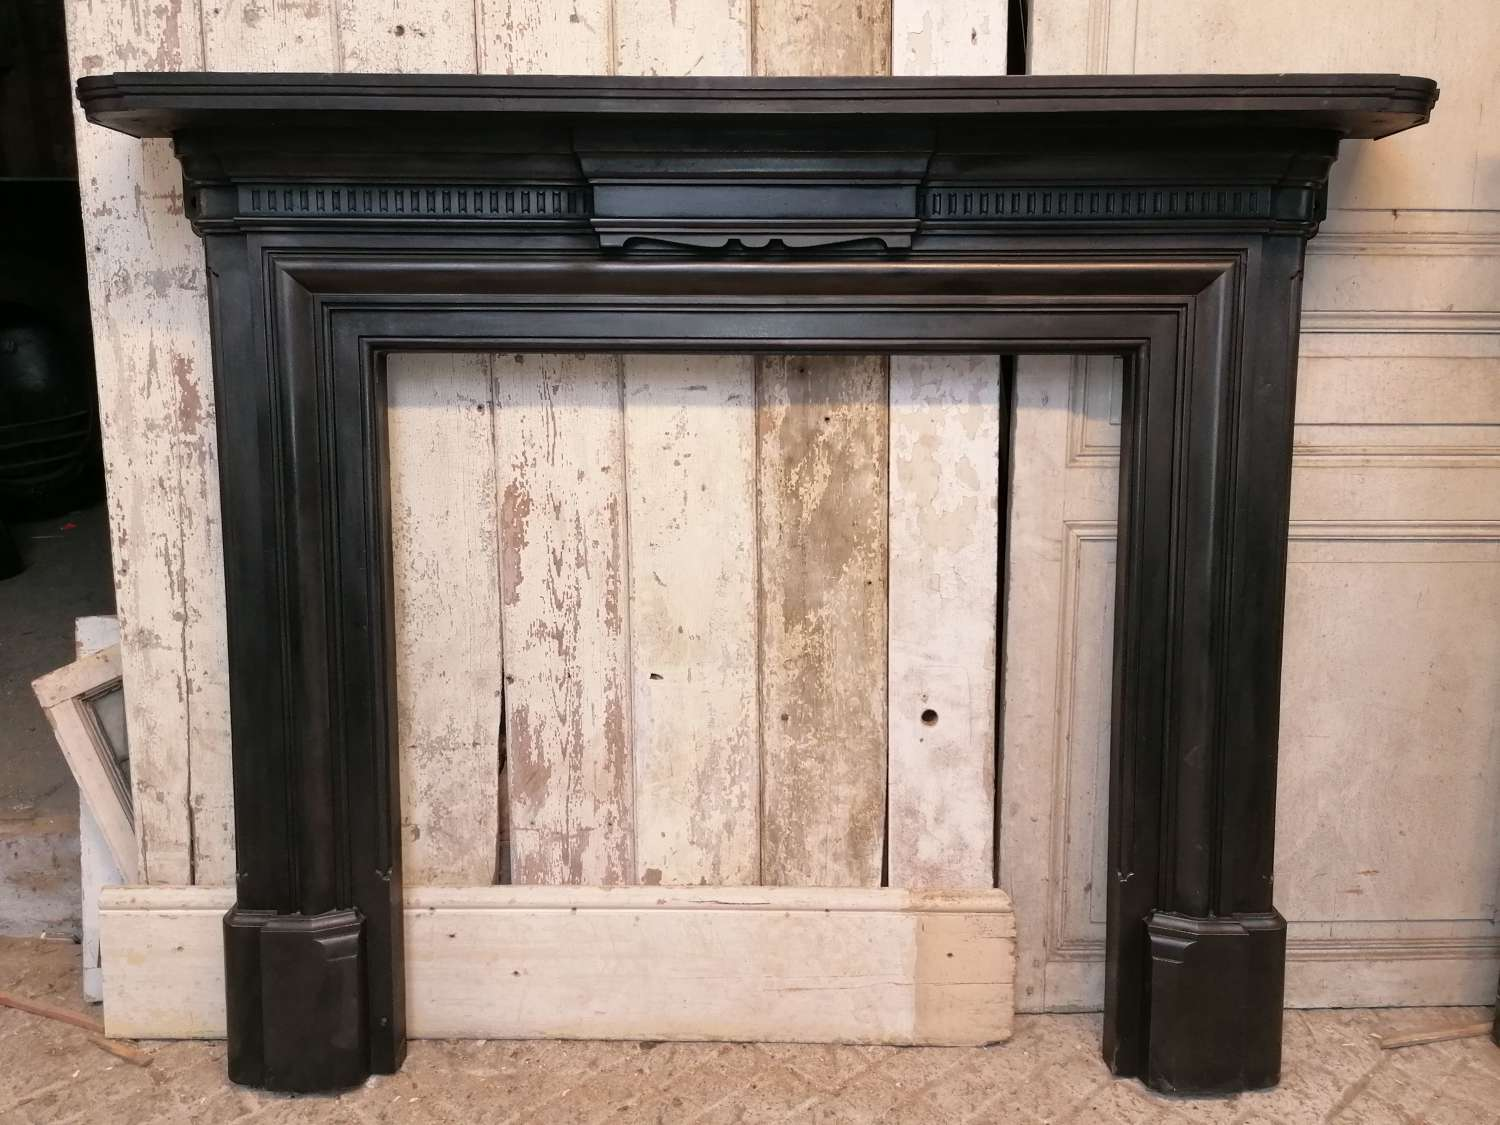 FS0120 A VERY LARGE ANTIQUE CAST IRON FIRE SURROUND FOR WOODBURNER